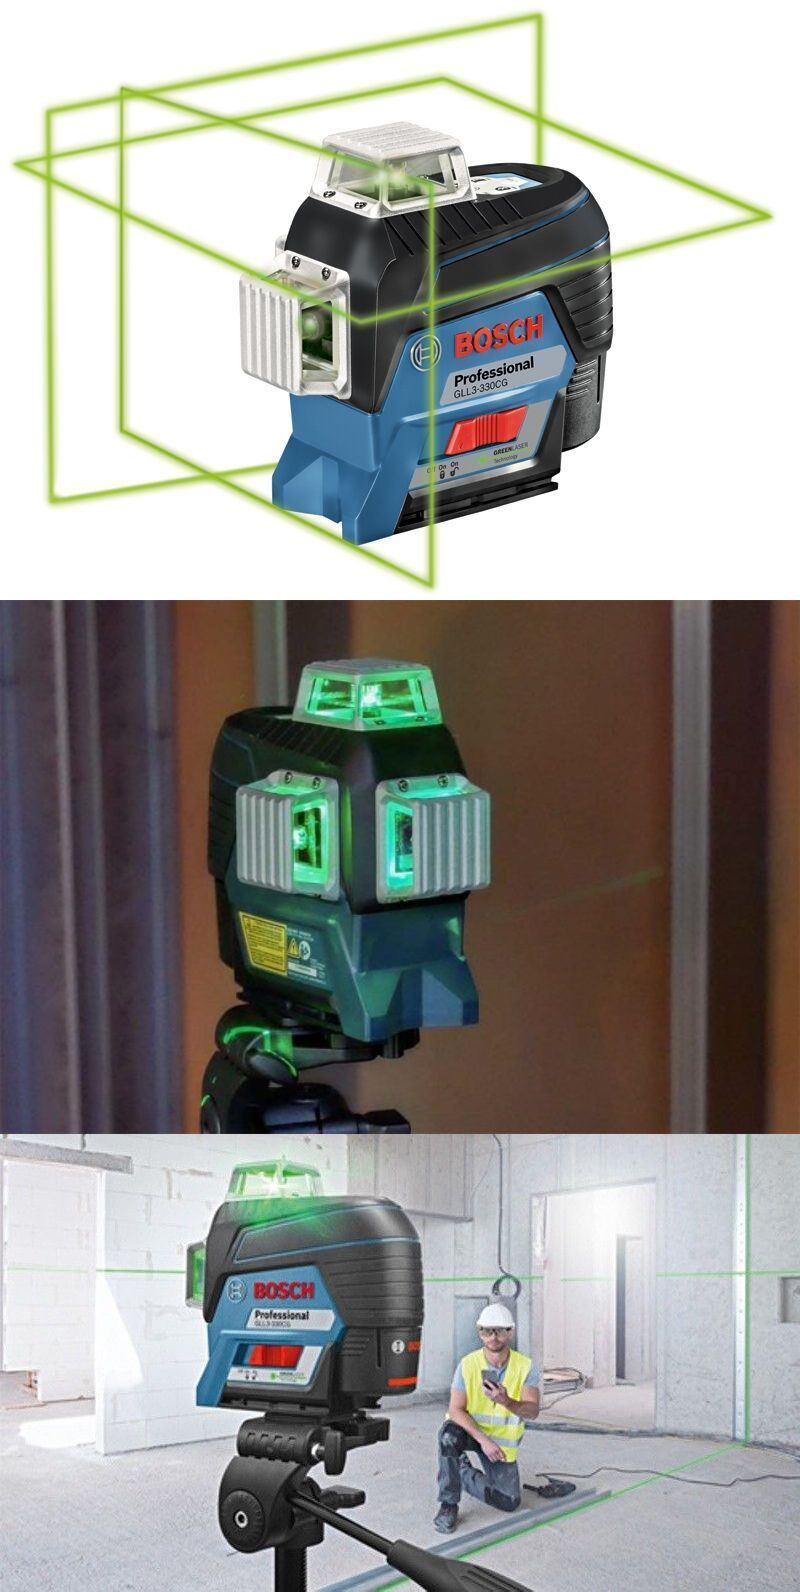 Laser Measuring Tools 126396 Bosch Gll3 330cg 360 Degree 3 Plane Leveling Green Laser With Free Extra Battery Buy It Now Bosch Green Laser Measuring Tools